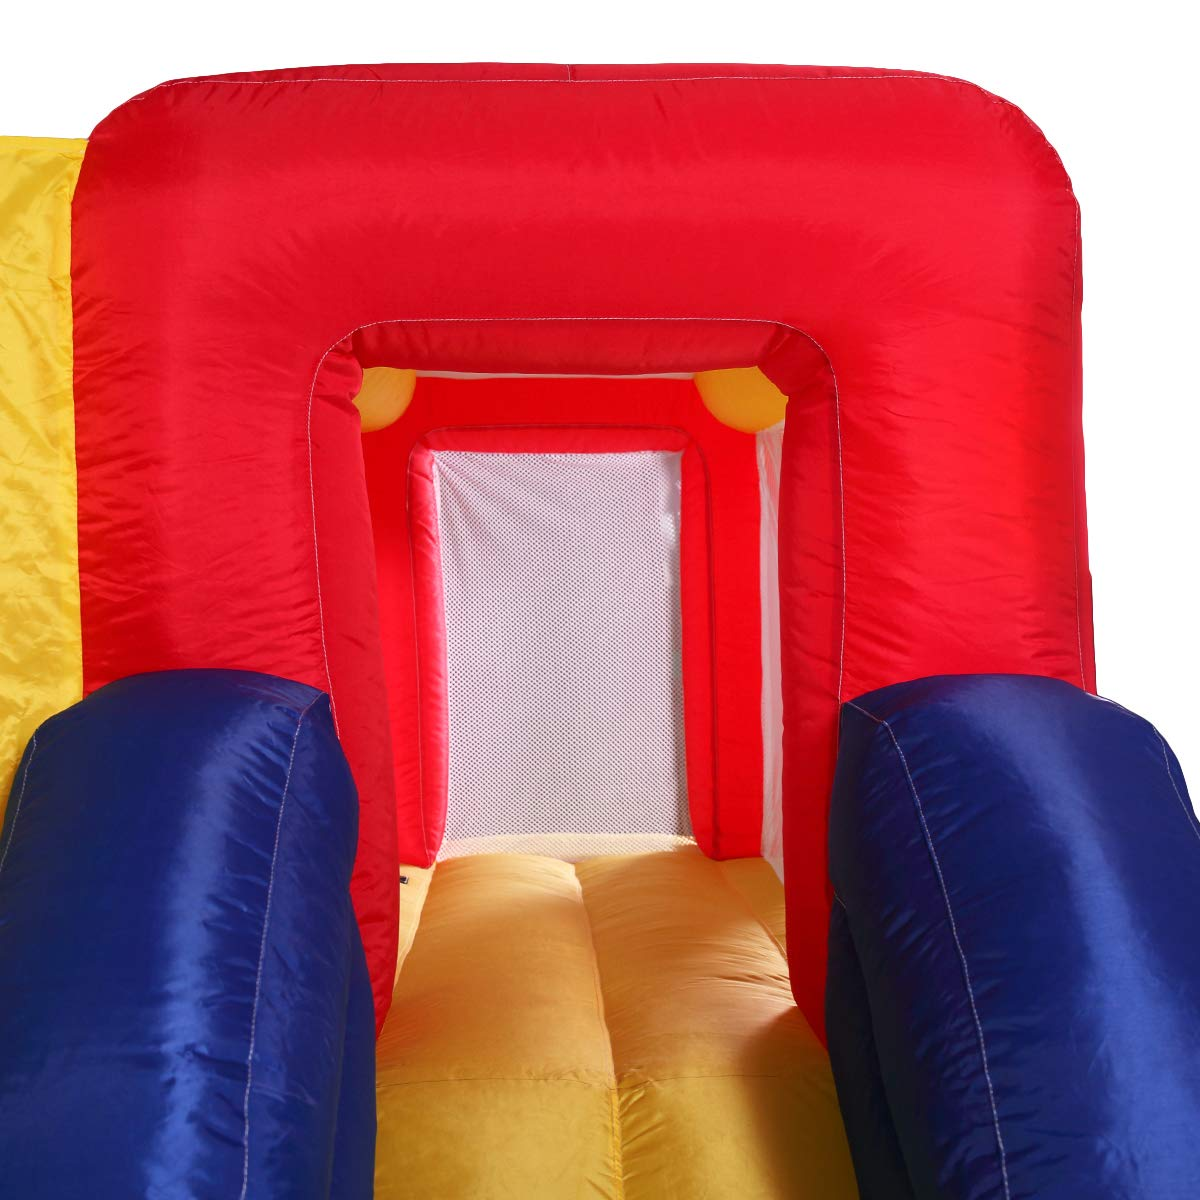 Kids Inflatable Bounce House Castle Jumper Slide Moonwalk Without Blower by BWM.Co (Image #5)